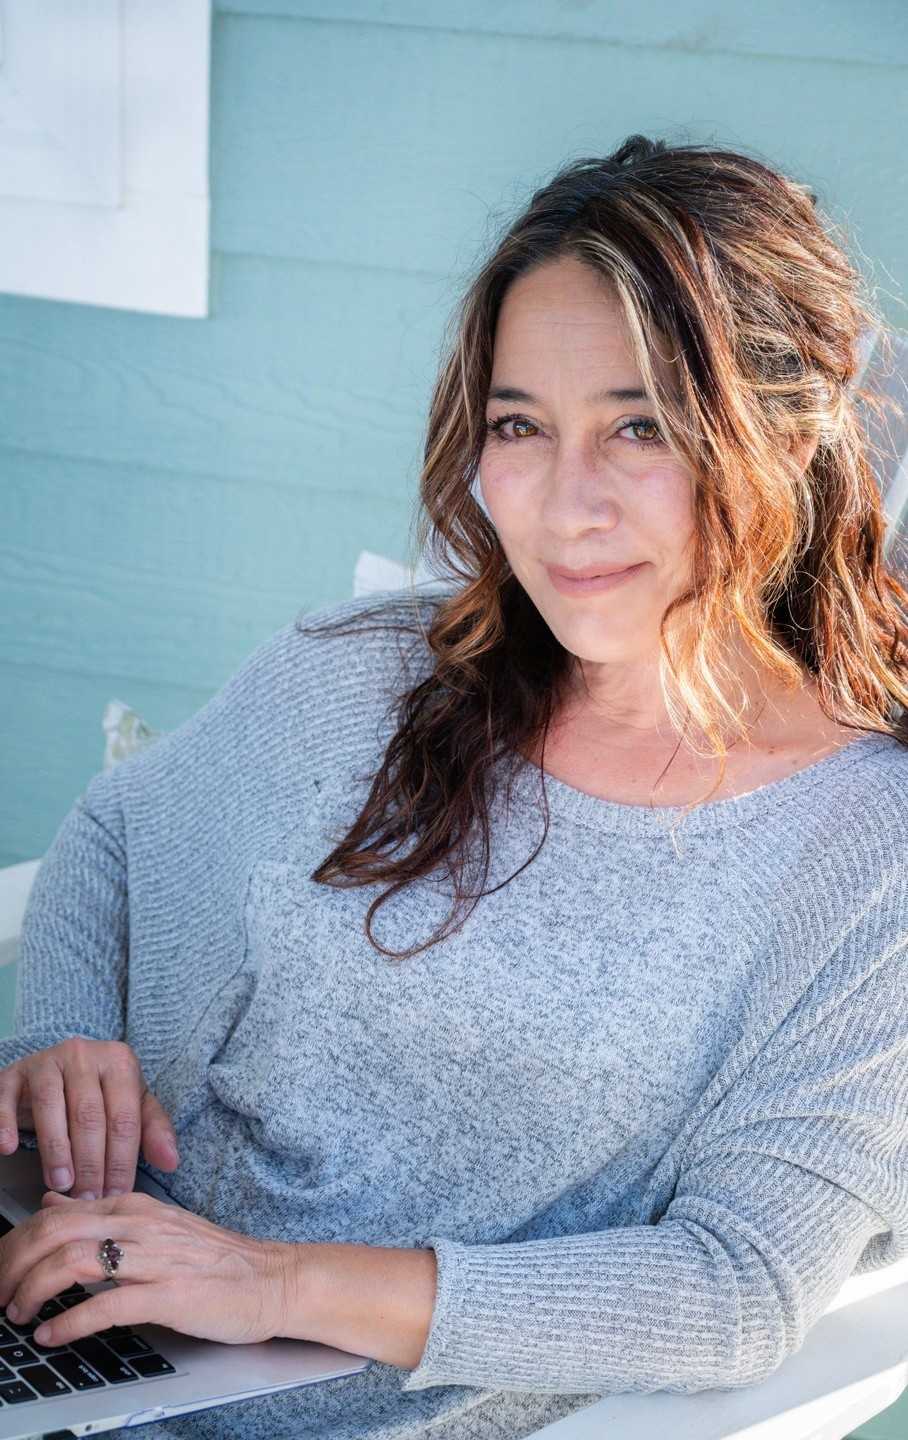 Diana Pastora Carson, a Latina woman, sits in a sunlit porch, with laptop in her lap, looking over toward the camera. Long brown hair is pulled back with some draped to front over her shoulder. She is wearing a grey sweater. Blue building in background.